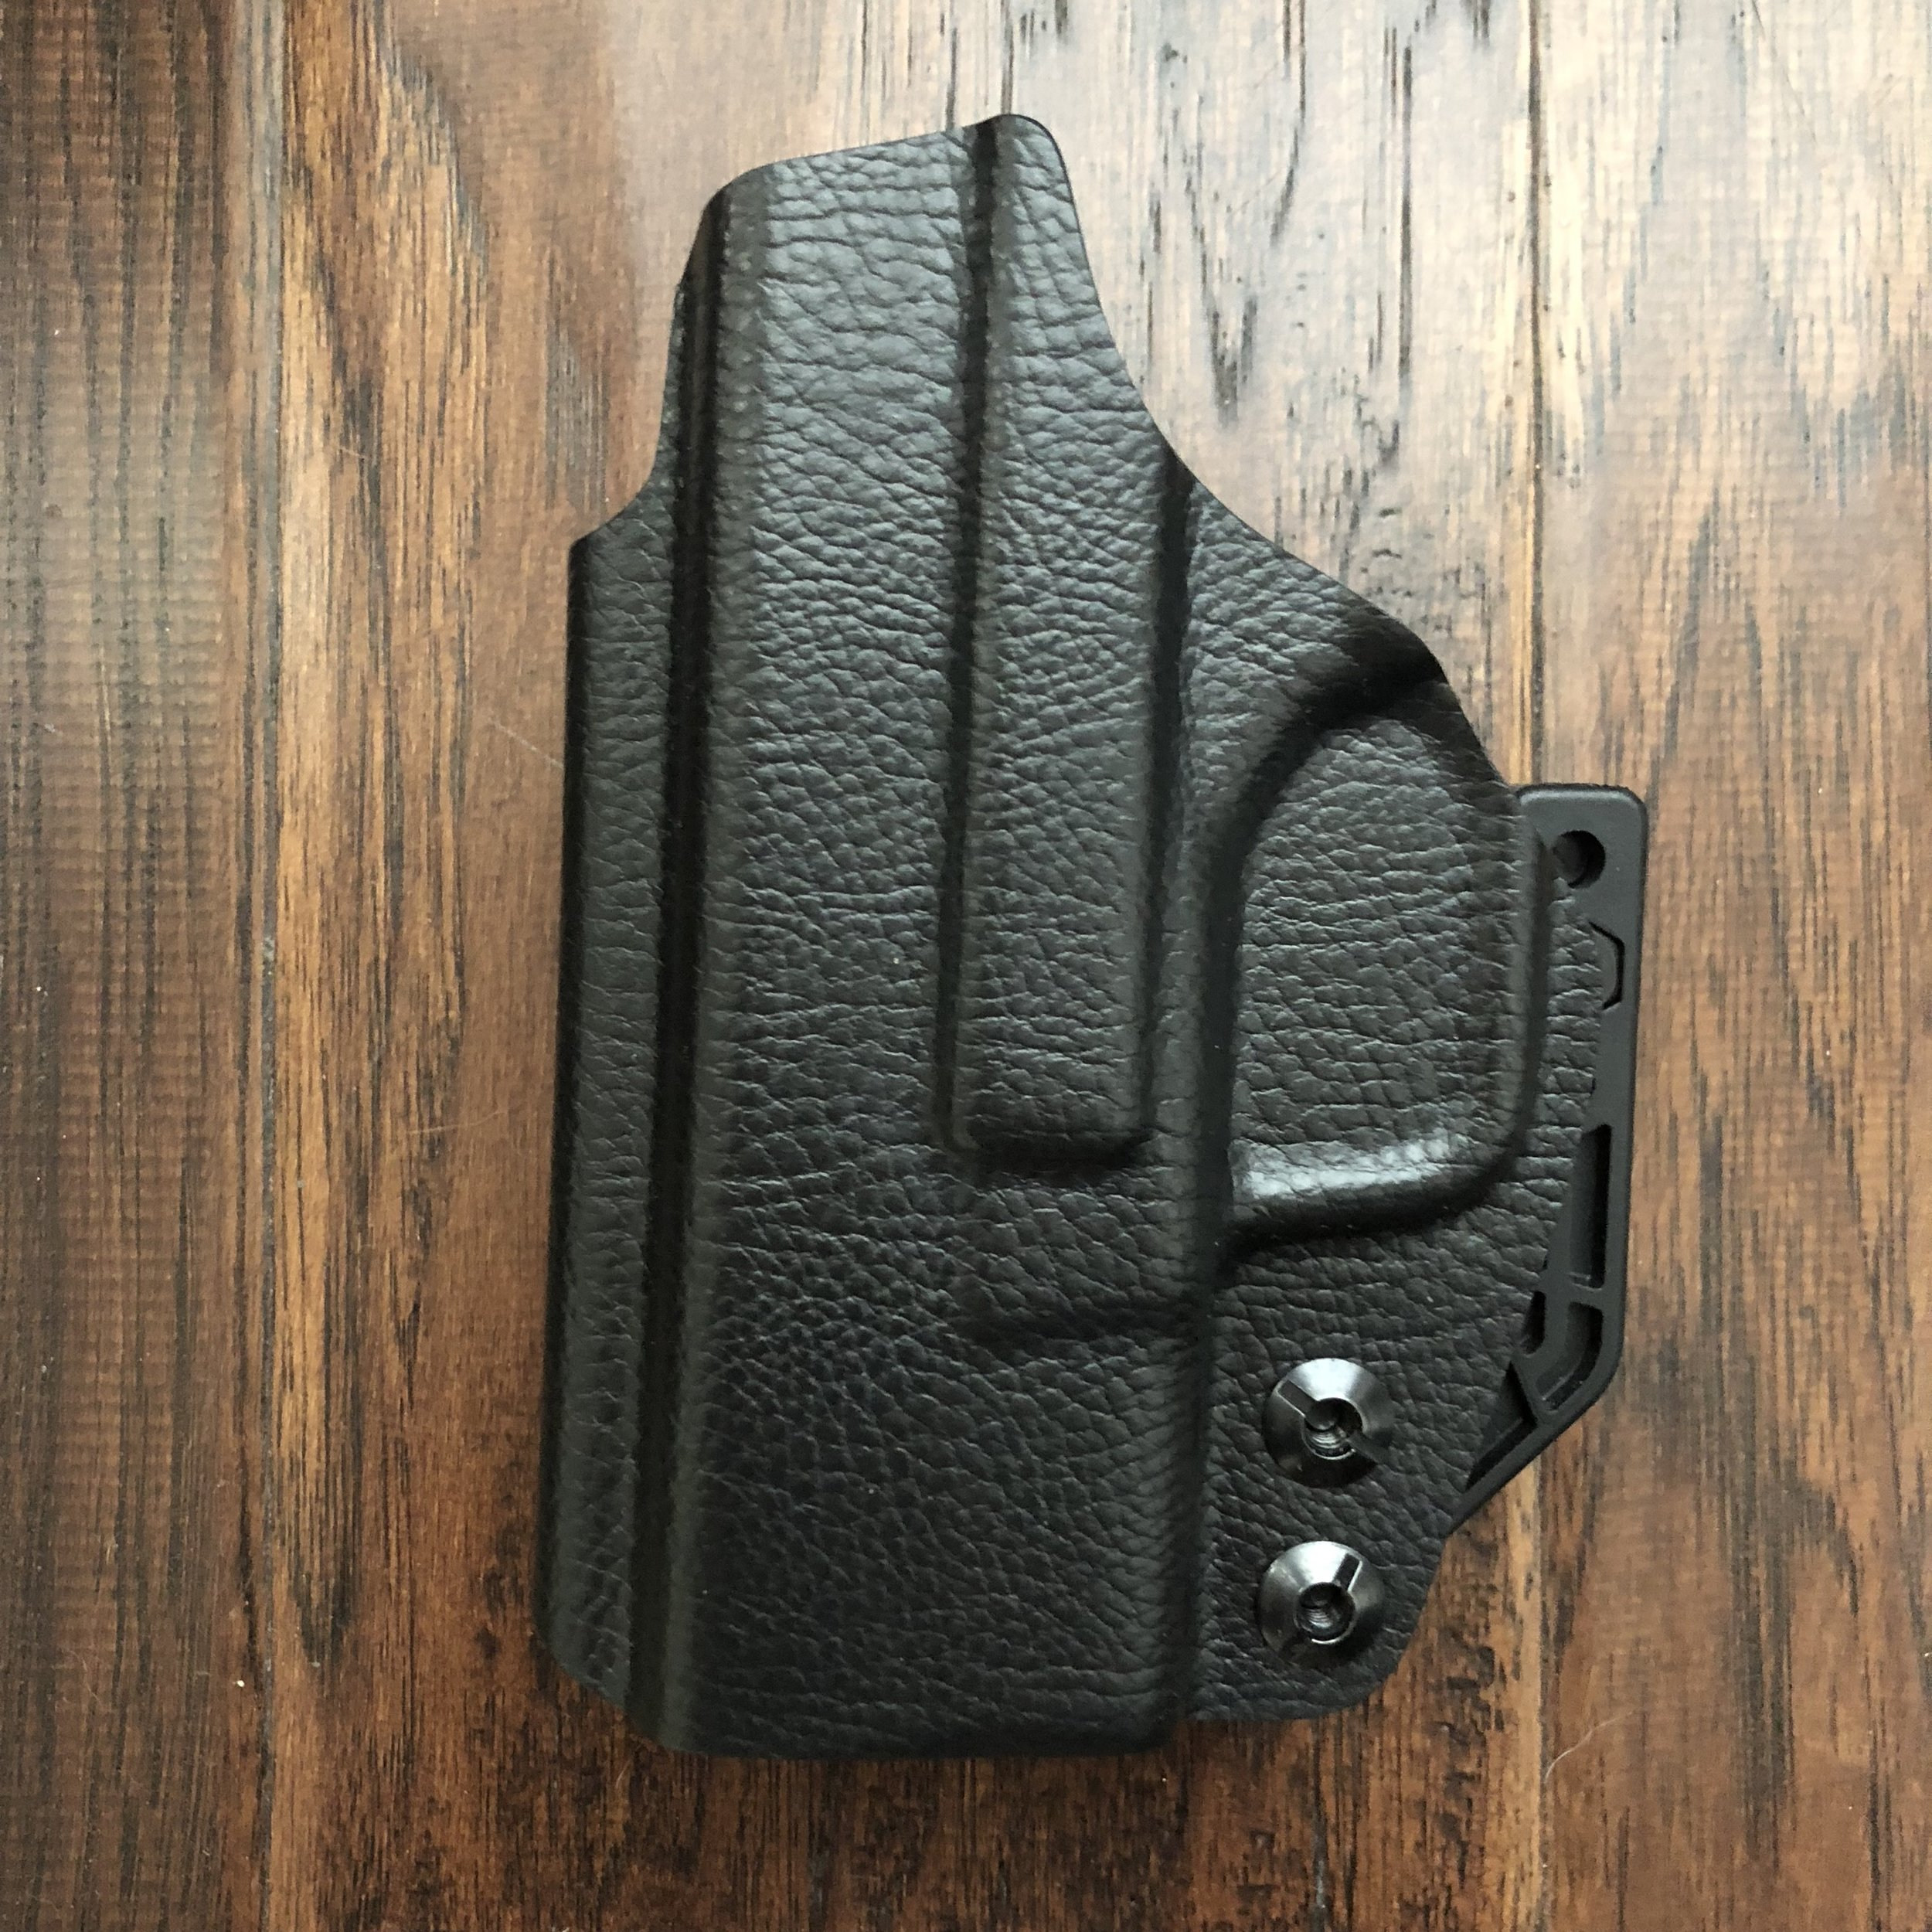 Huckleberry Tactical IWB Holster with UltiClip, $50